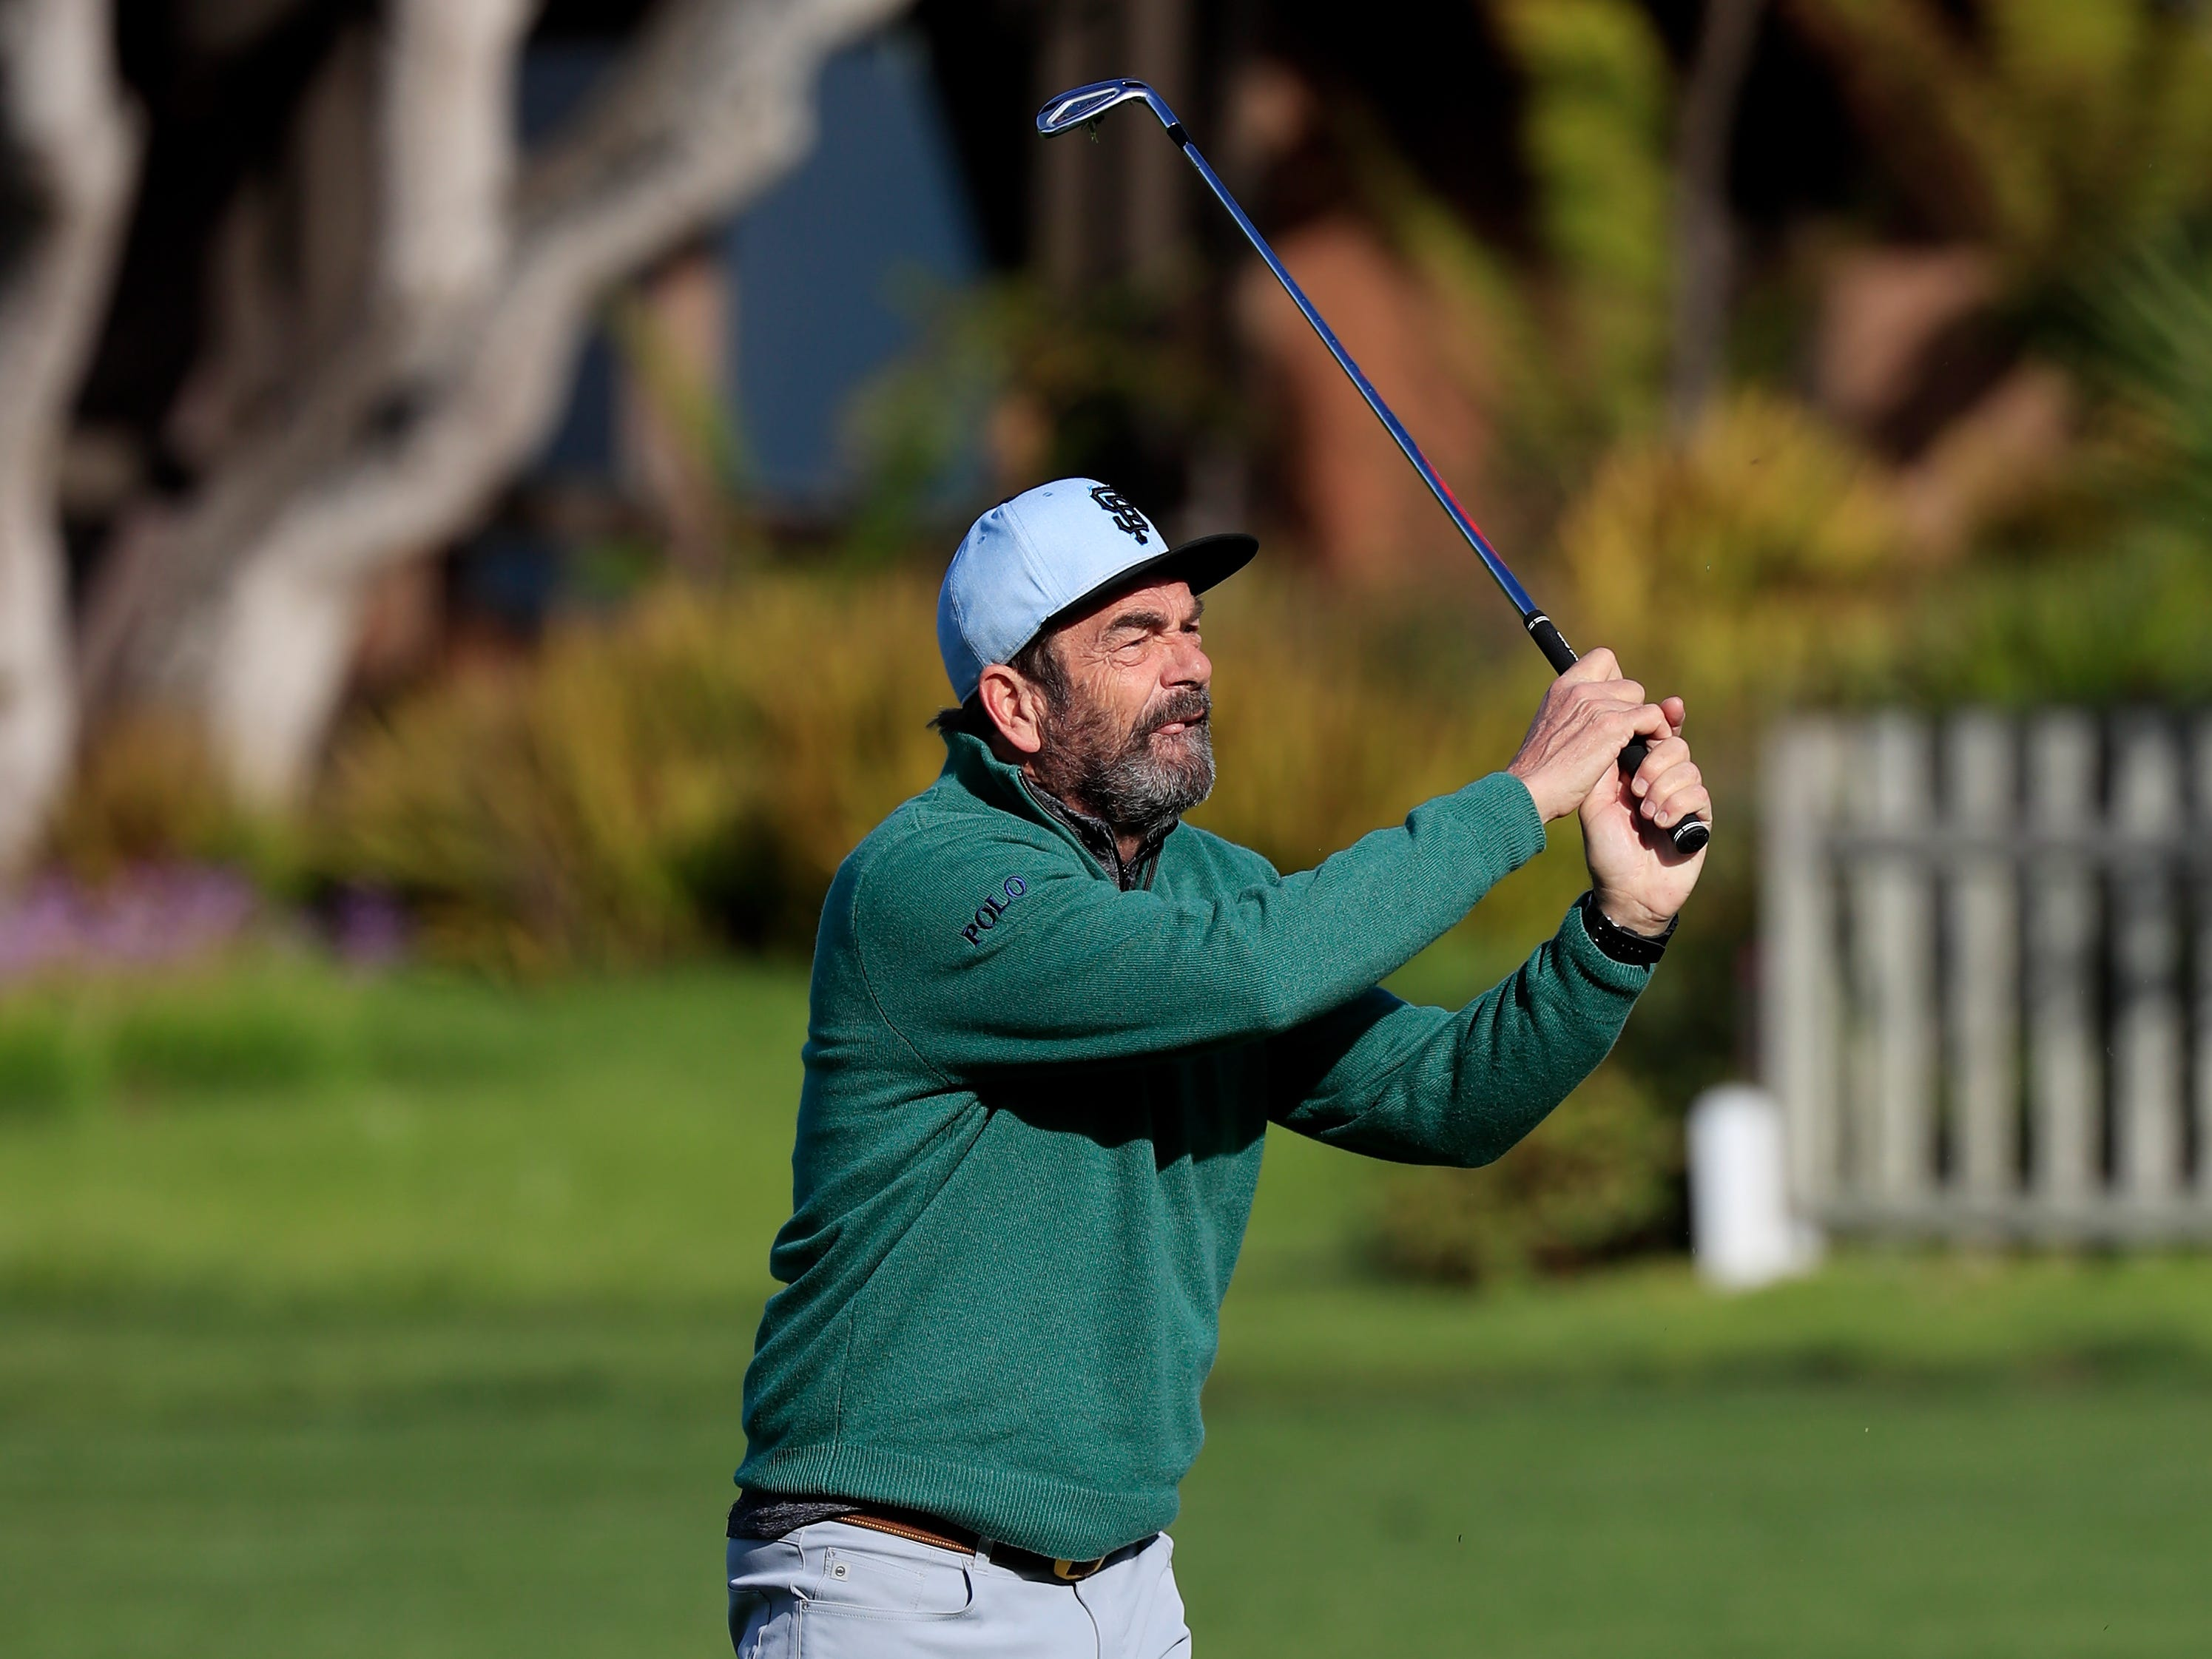 Singer Huey Lewis plays a shot during the first round of the AT&T Pebble Beach Pro-Am.